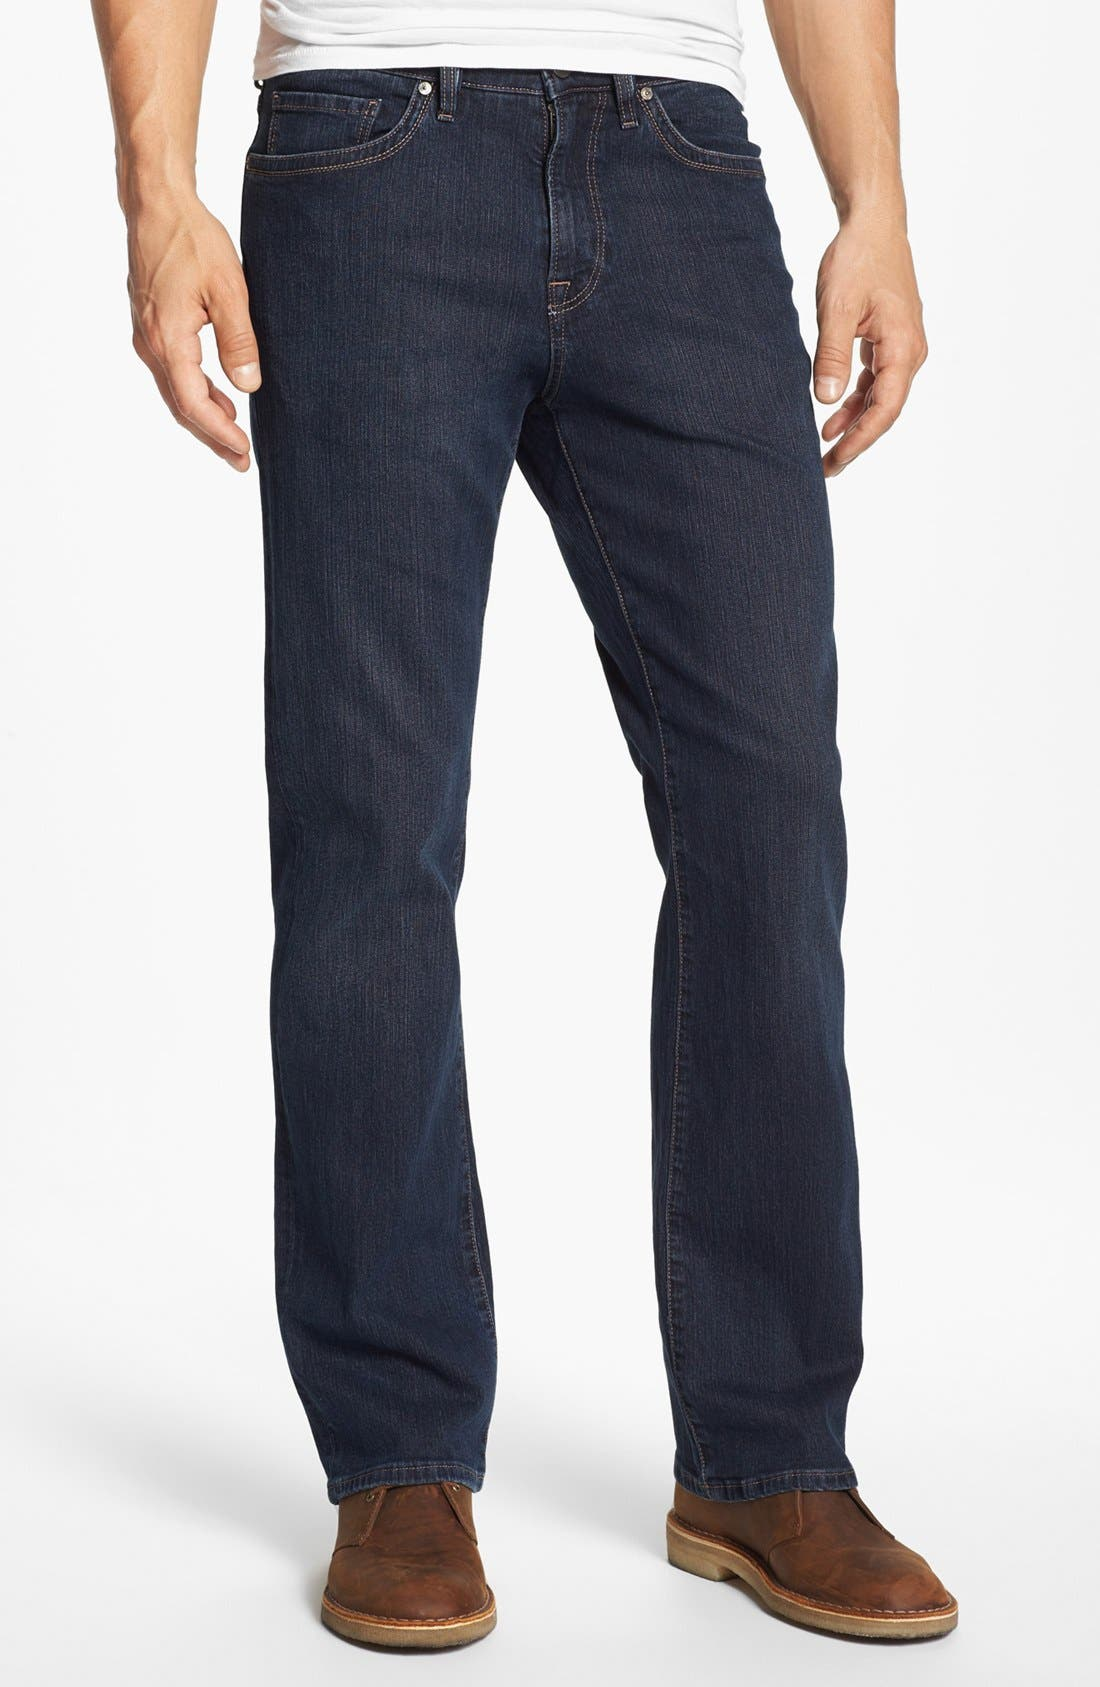 Alternate Image 1 Selected - 34 Heritage Charisma Relaxed Fit Jeans (Dark Comfort) (Regular & Tall)